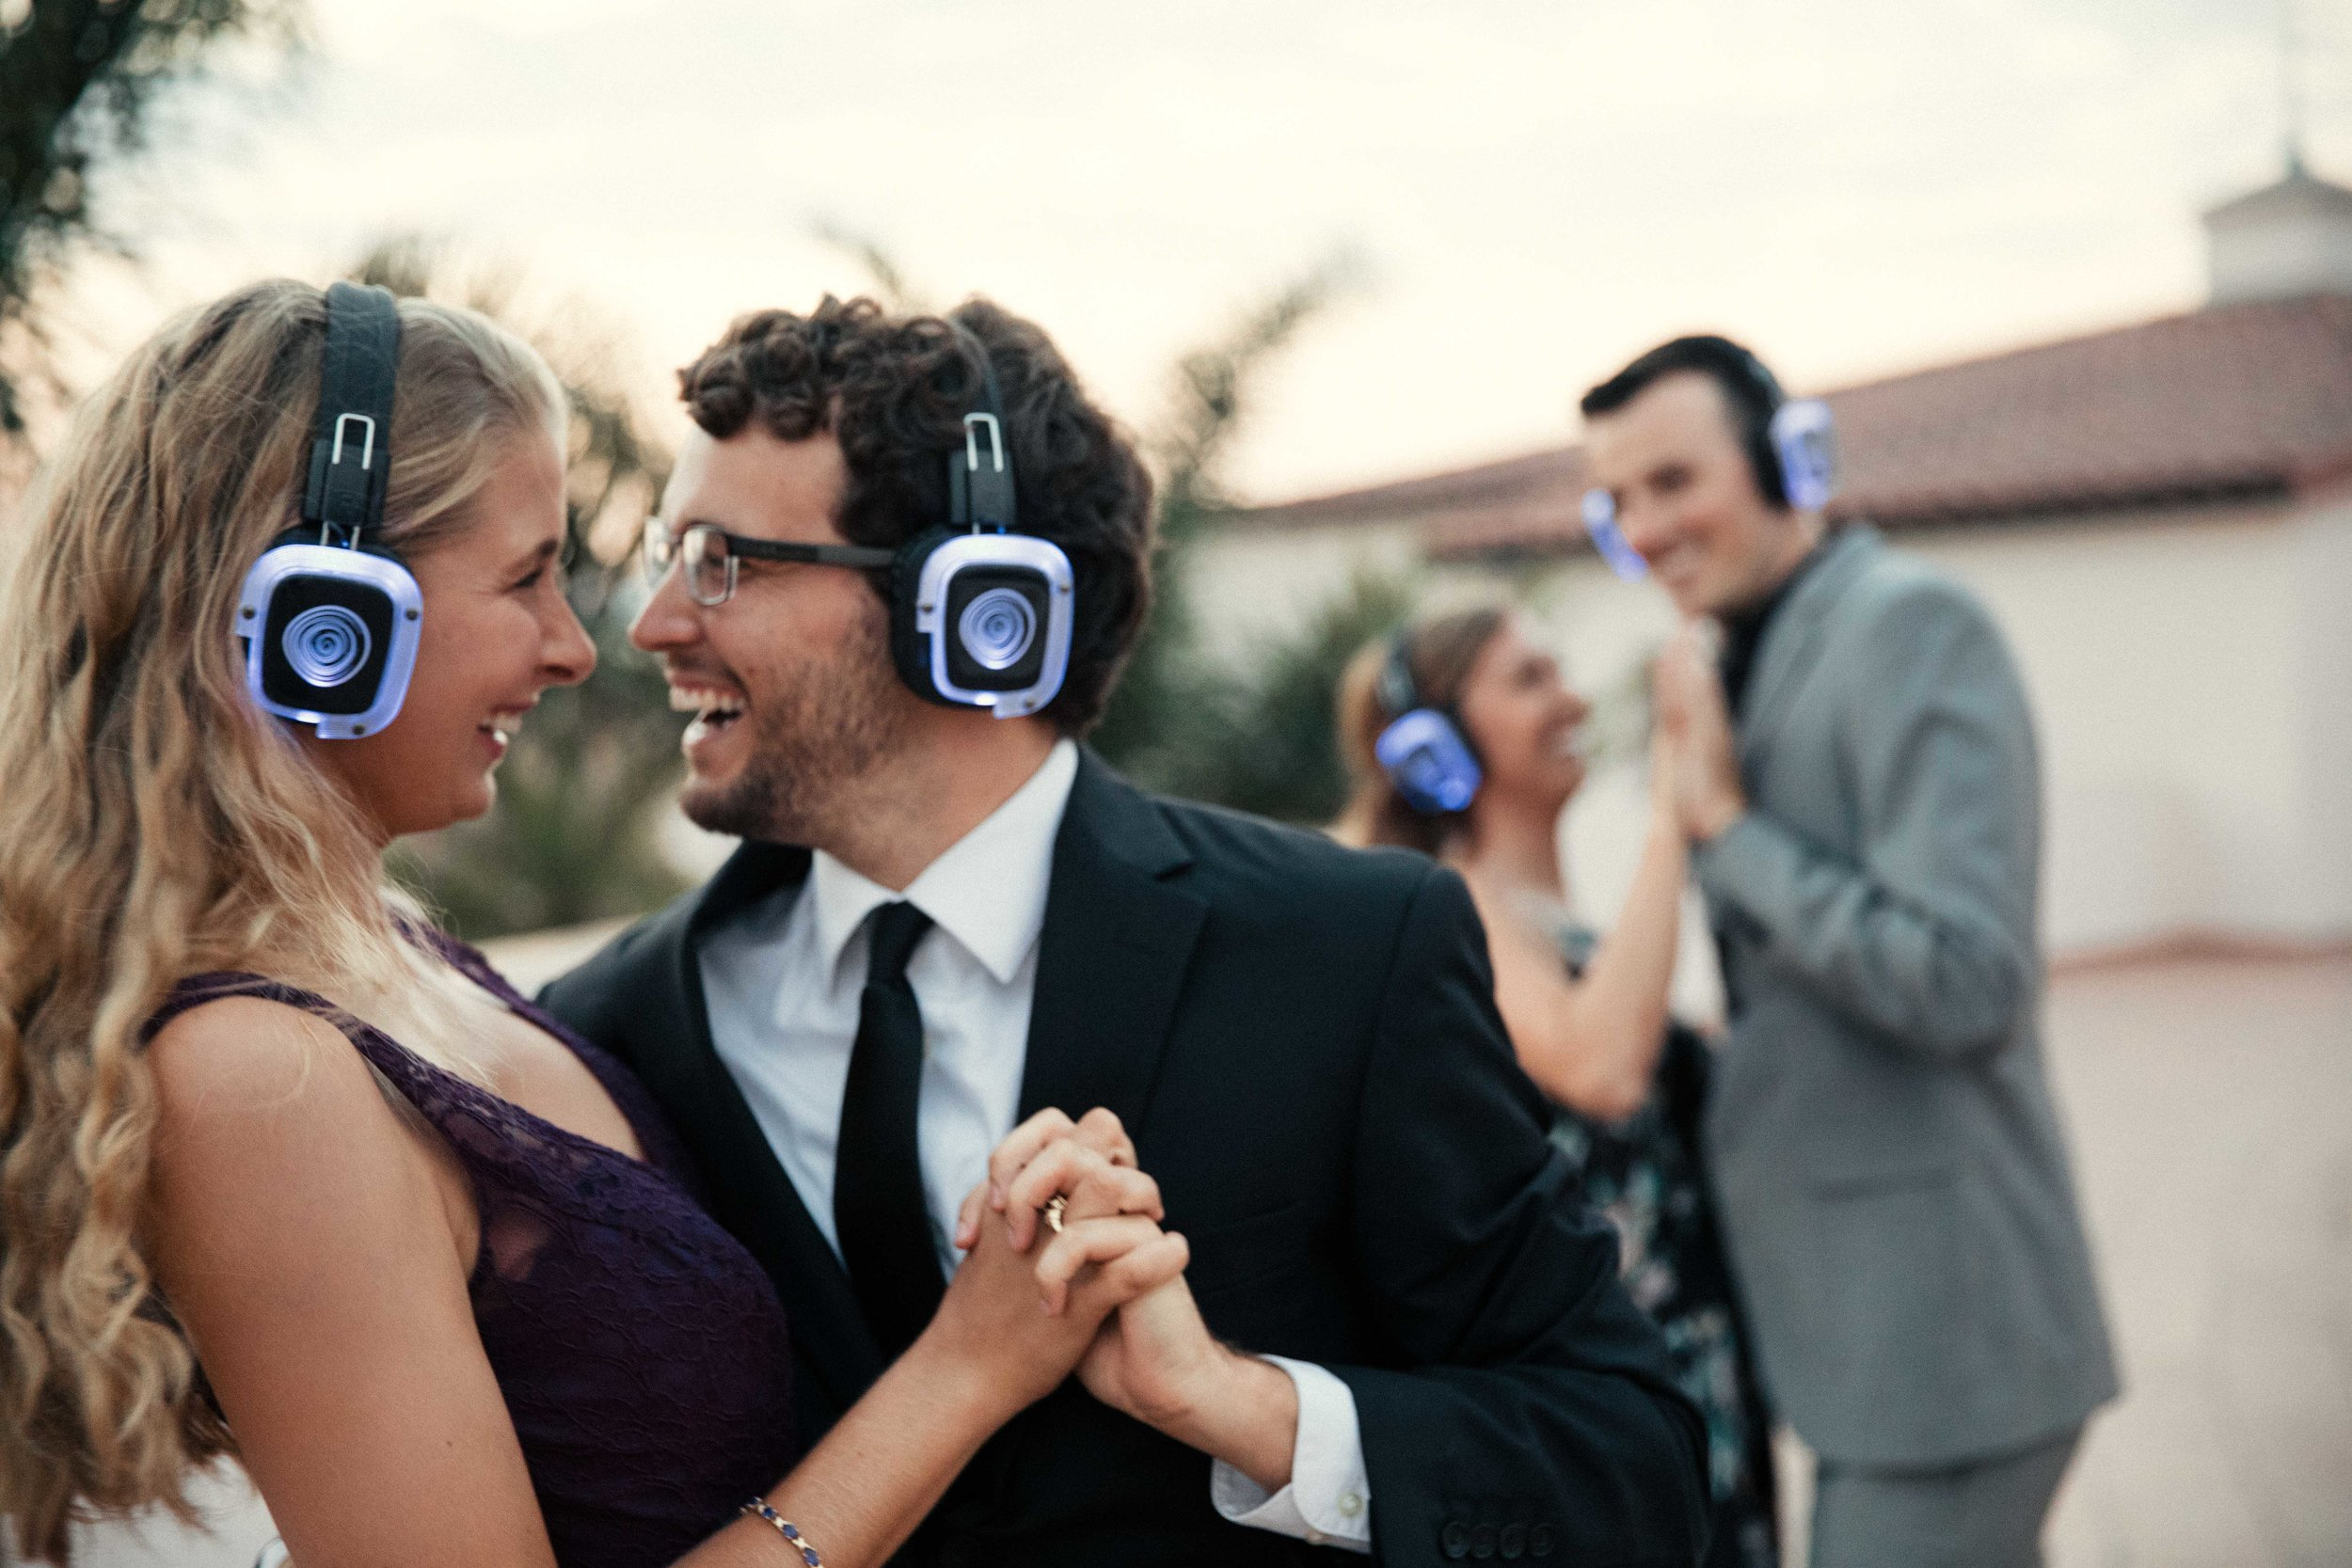 SOUND GEAR - We have impressive gear including wireless and battery powered solutions to make things easy. We can provide sound for ceremony, cocktail hour, dinner, speeches, bands, and DJ's all in the same night. We also offer wireless headphones for when you want to keep dancing even after the venue needs you to stop amplified music.